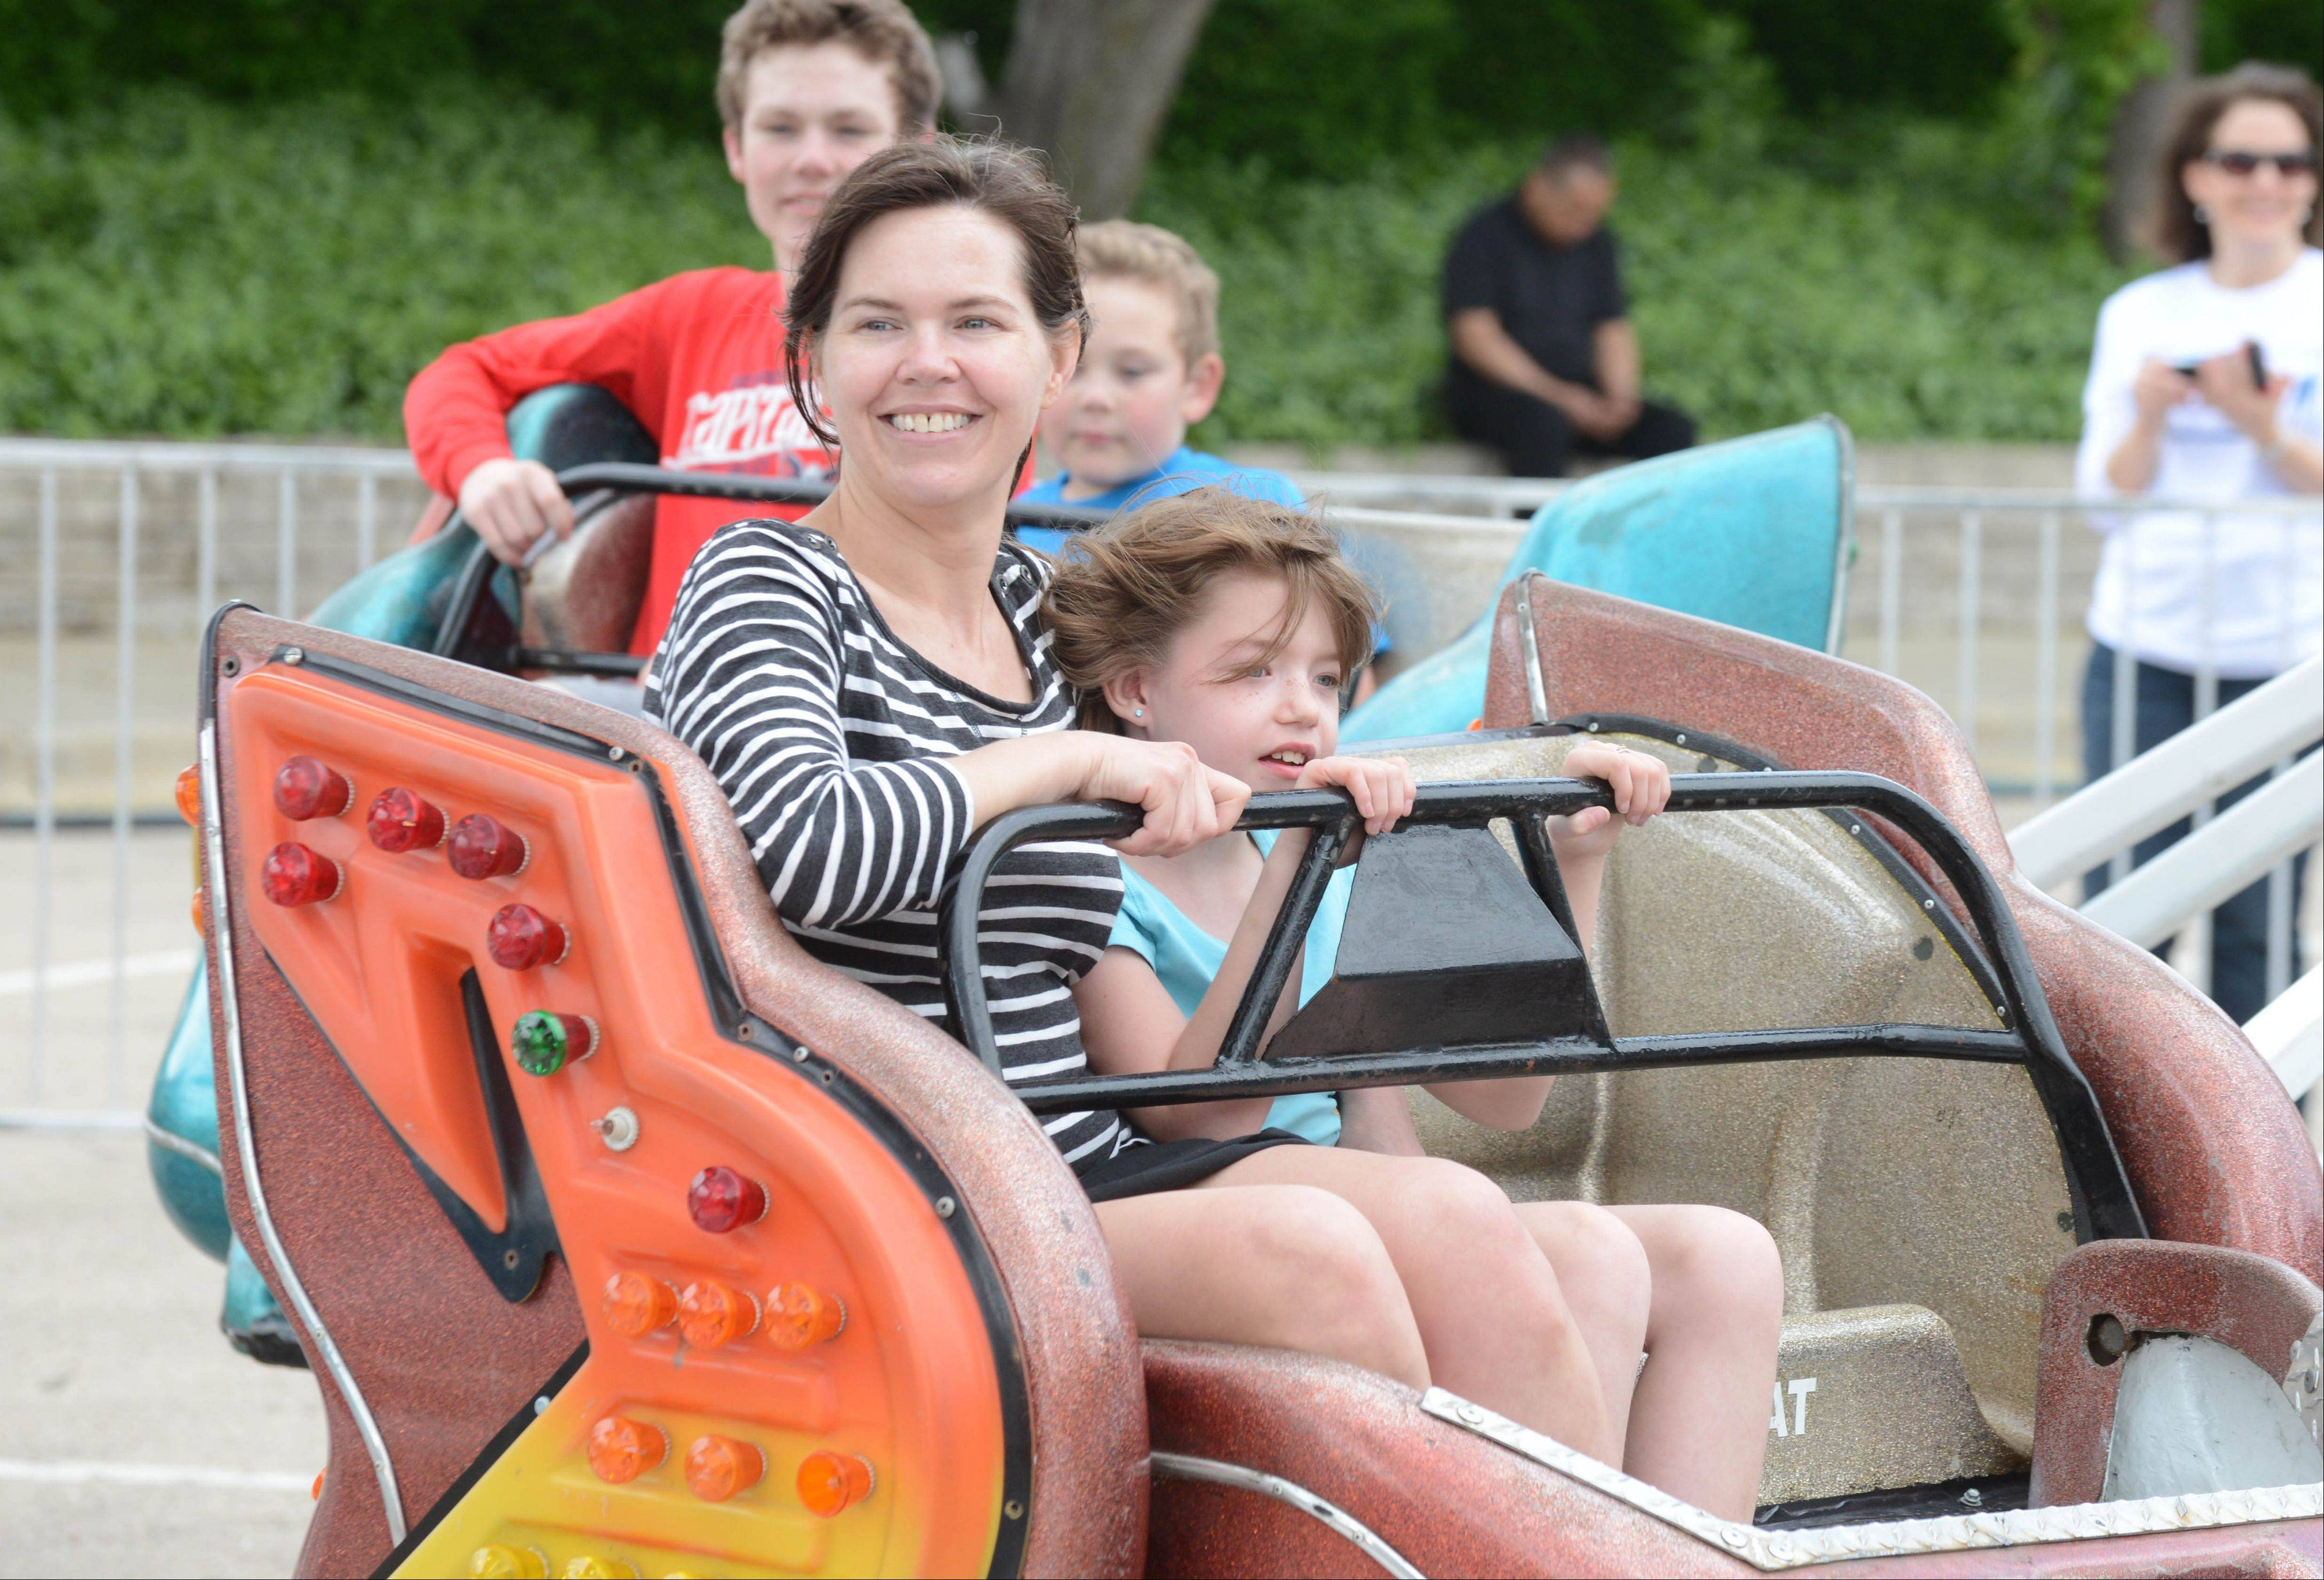 Marianna Johnson and her daughter, Ava Barton, 10, of Wheaton enjoy a ride on the �Sizzler� Saturday afternoon at the Taste of Wheaton. Food, rides, an art fair and performers were the highlights of the annual fest.